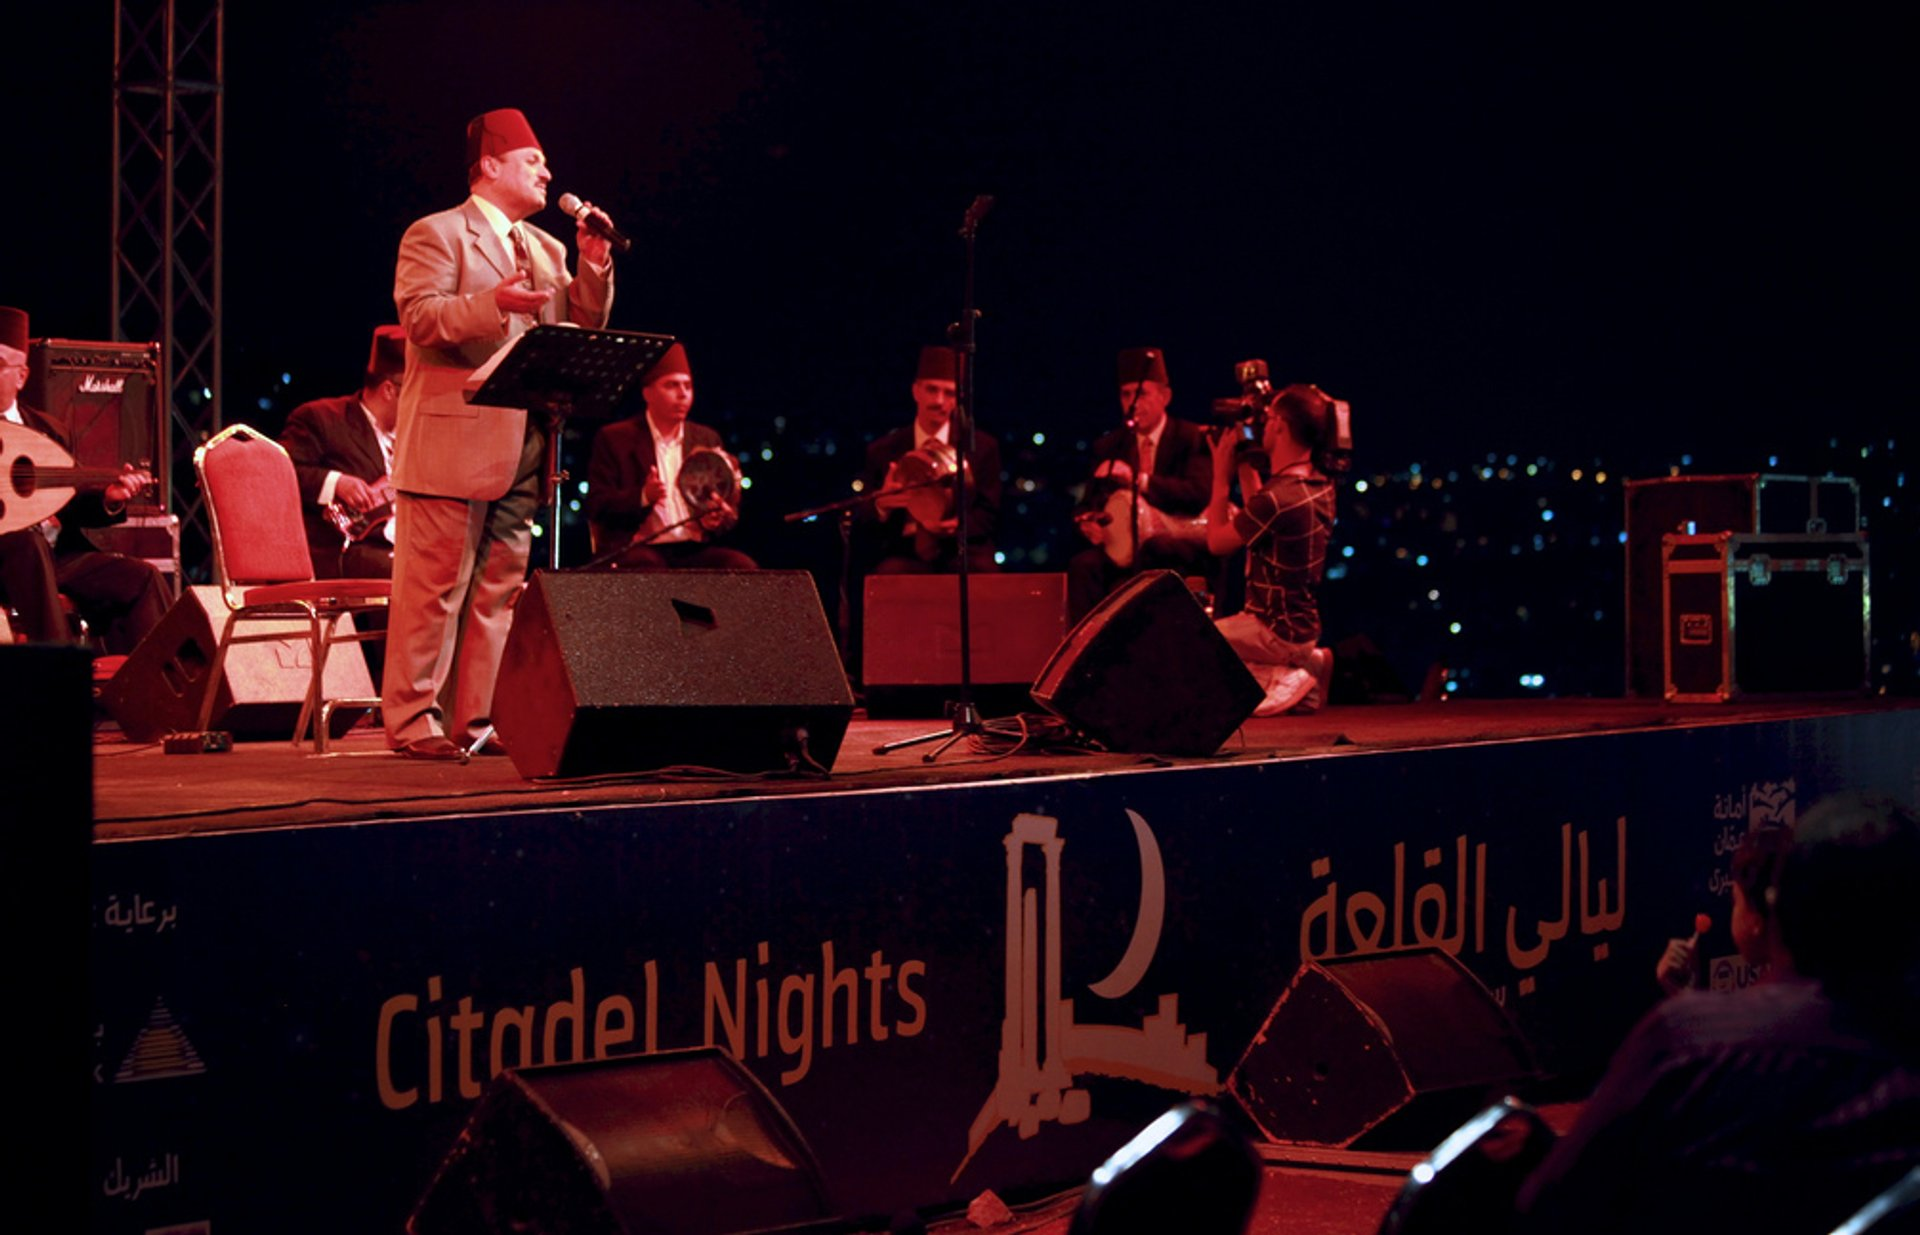 Citadel Nights in Jordan - Best Time